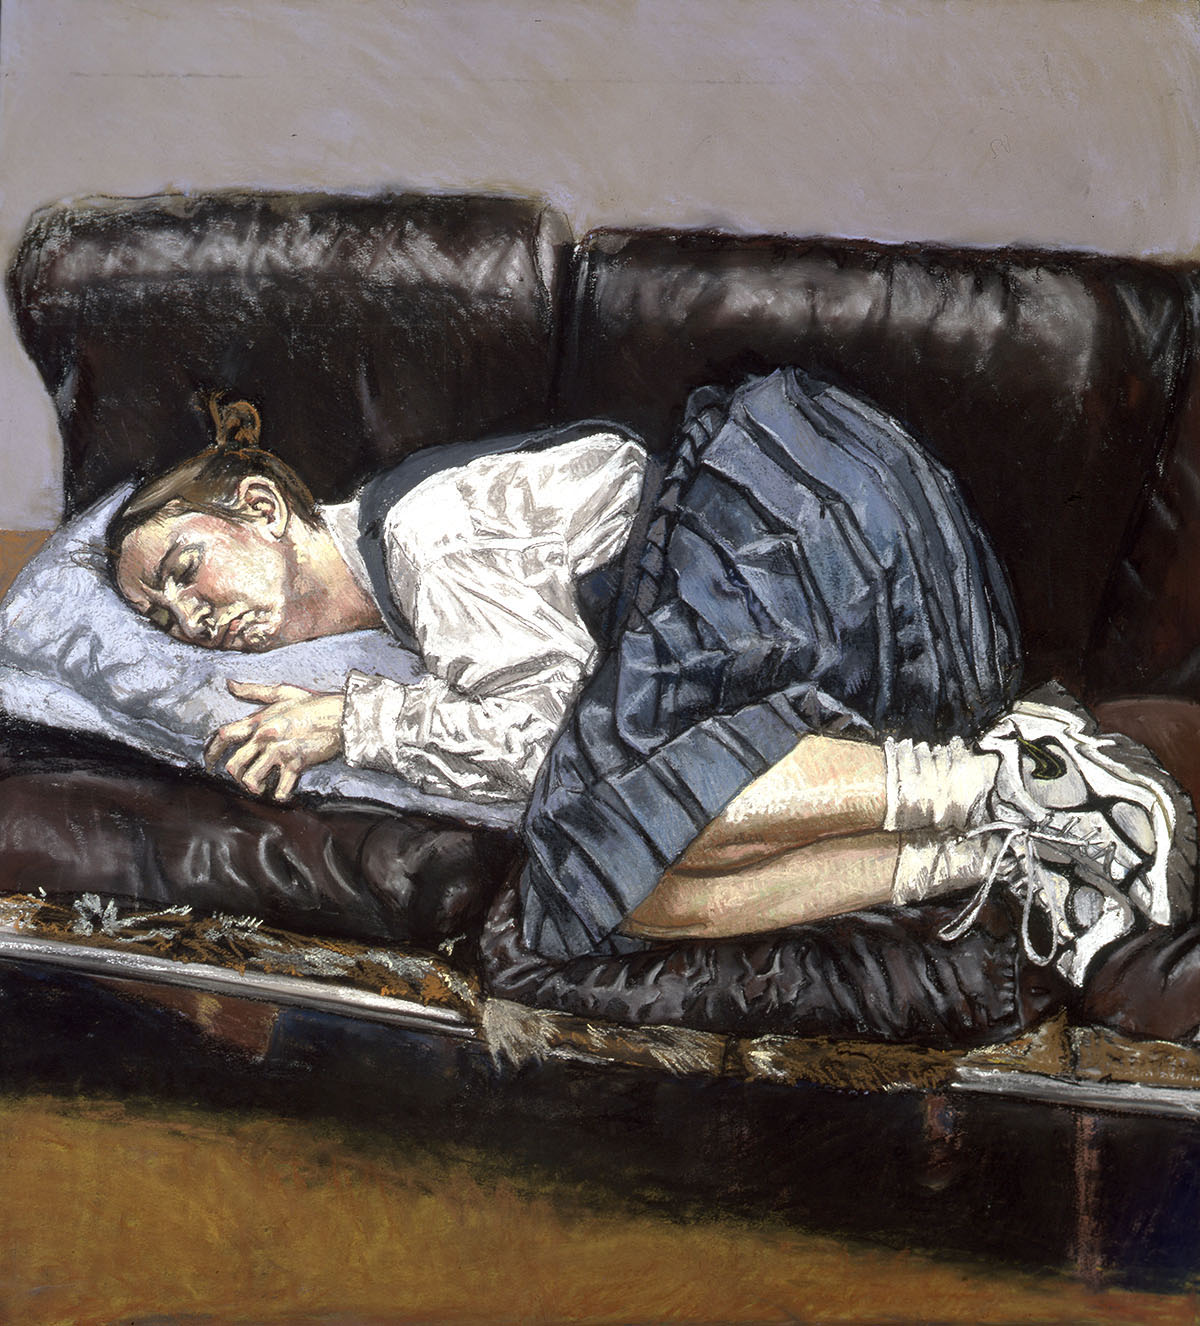 Paula Rego, Untitled